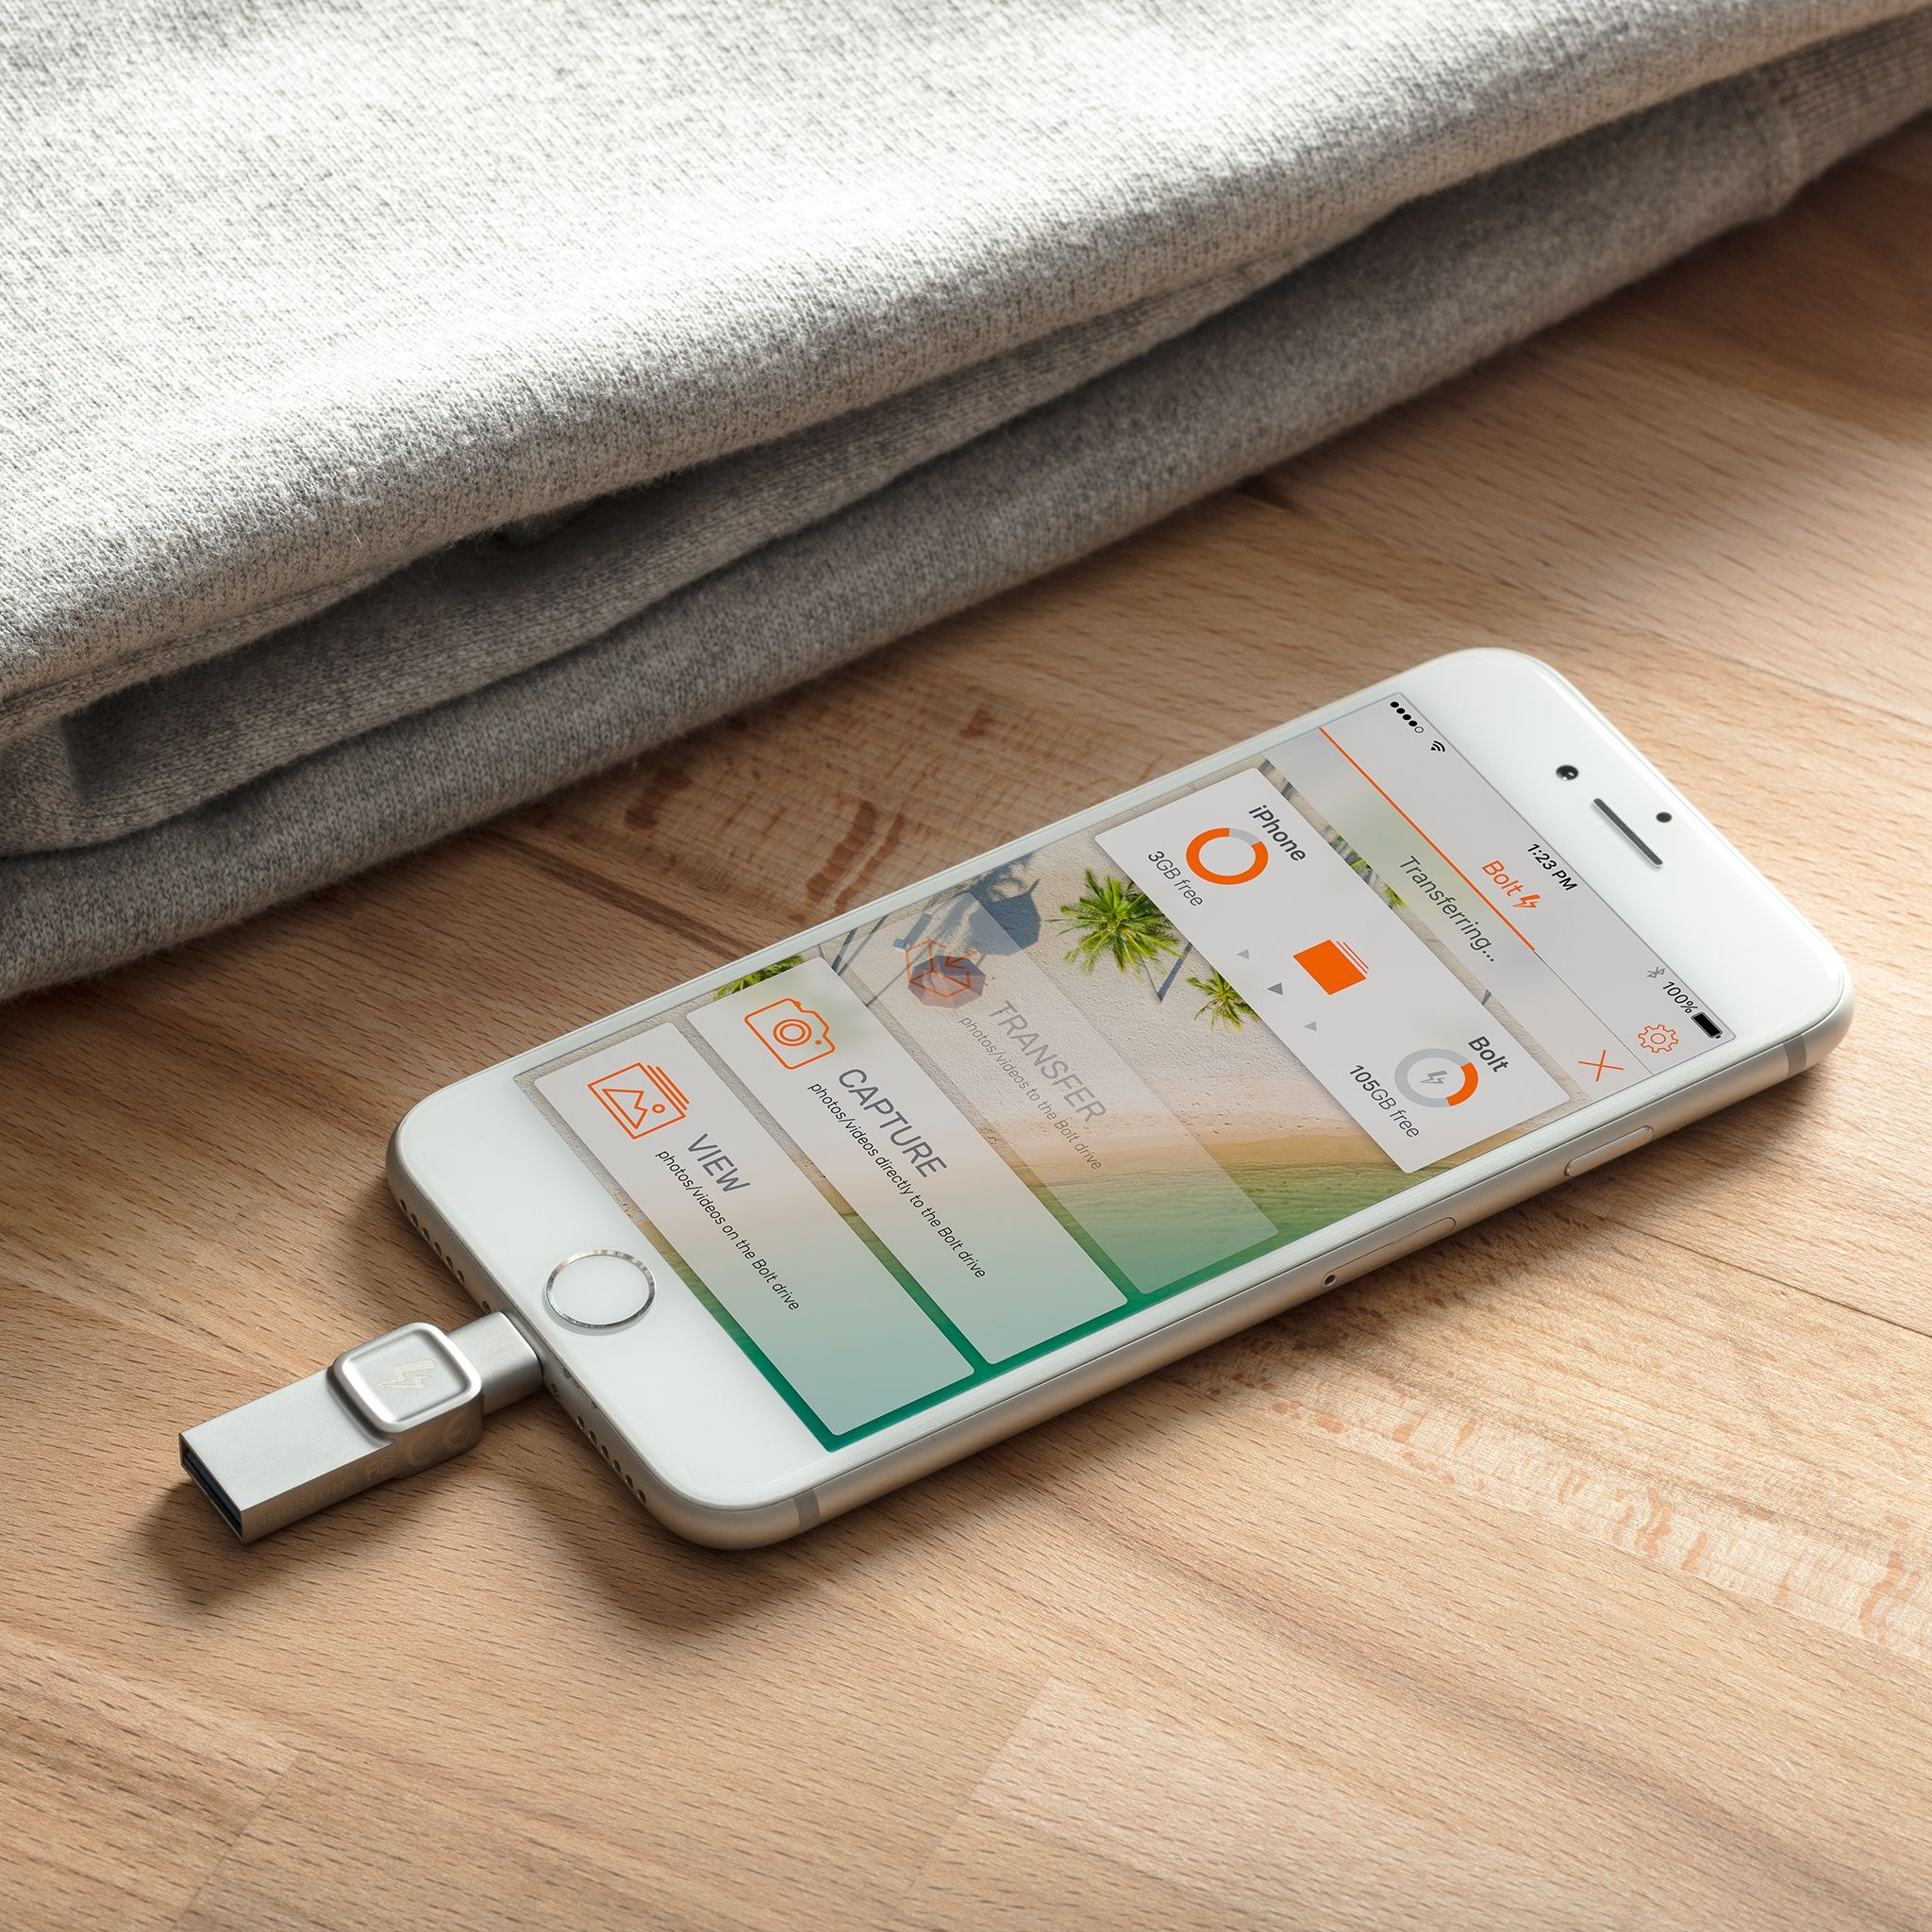 new concept 54df5 f8b0c DataTraveler Bolt Duo USB Flash Drive for iPhones and iPads